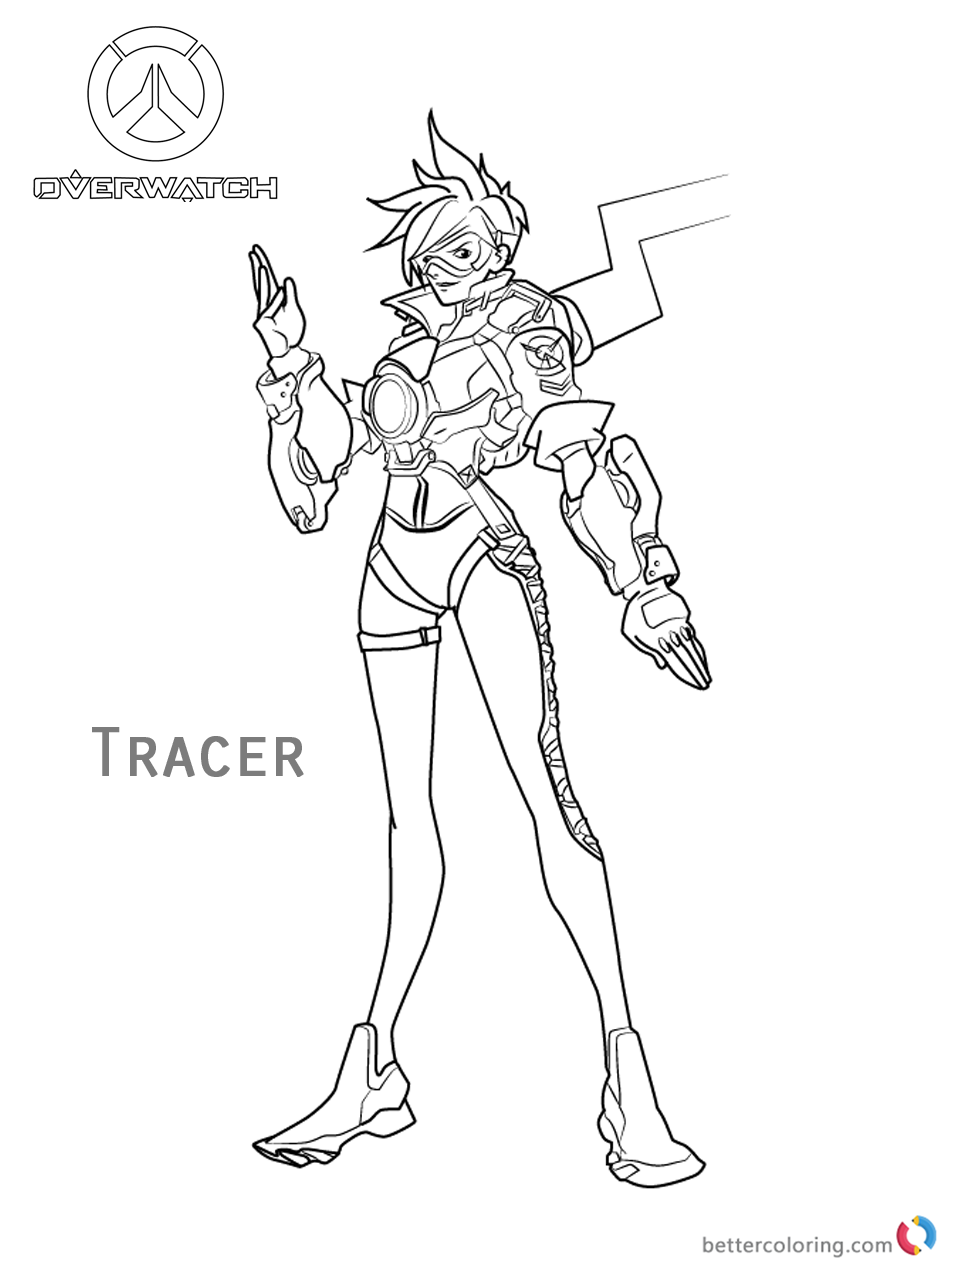 Tracer from Overwatch coloring pages printable